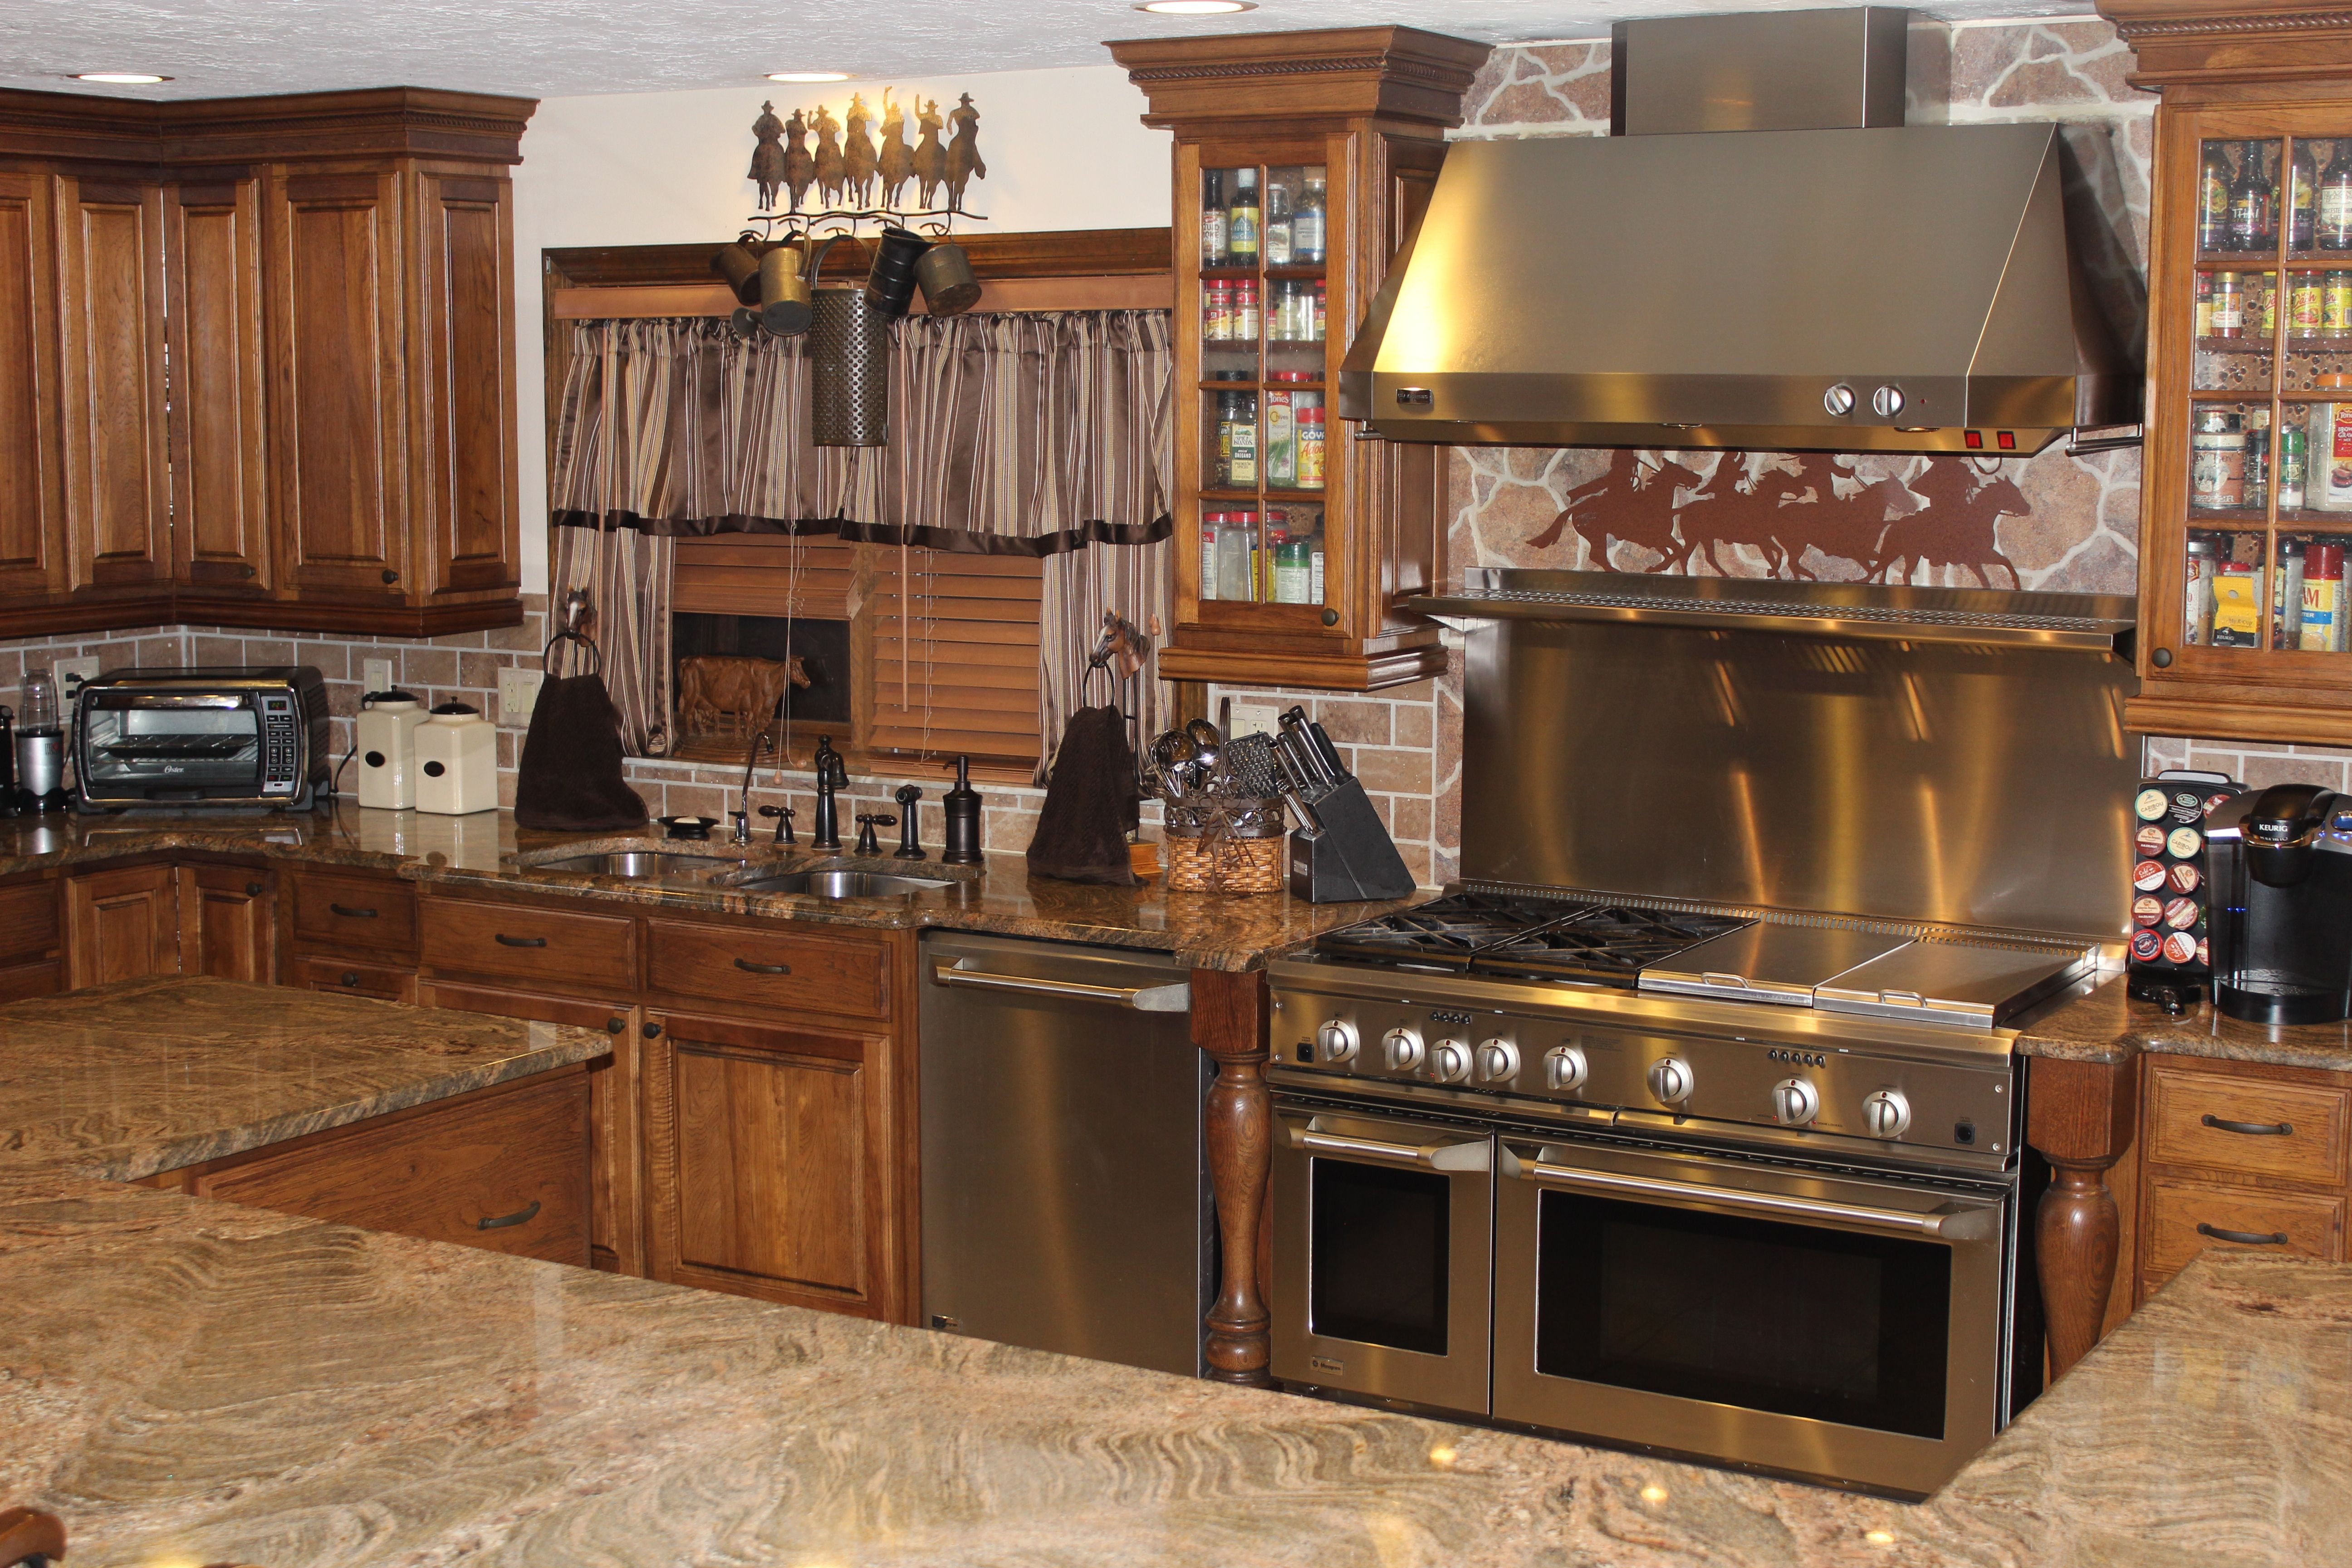 Western kitchen home western barn decor pinterest - Western canisters for kitchen ...